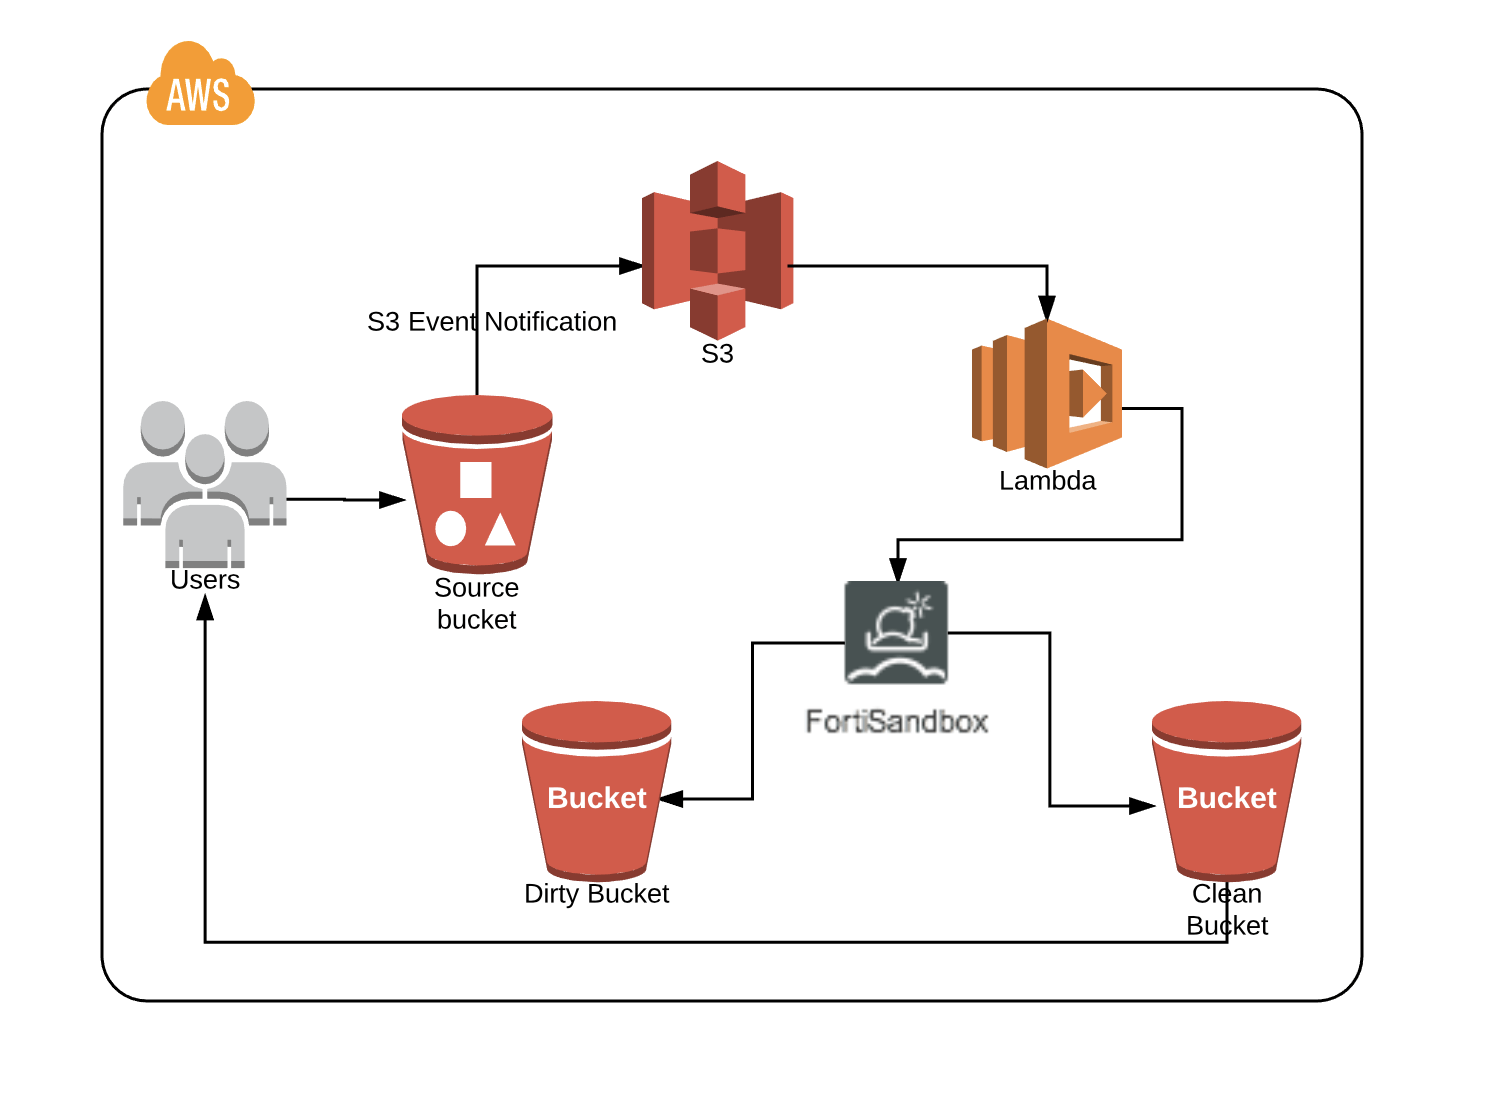 Top 3 Reasons Why Your Business Needs FortiSandbox in AWS